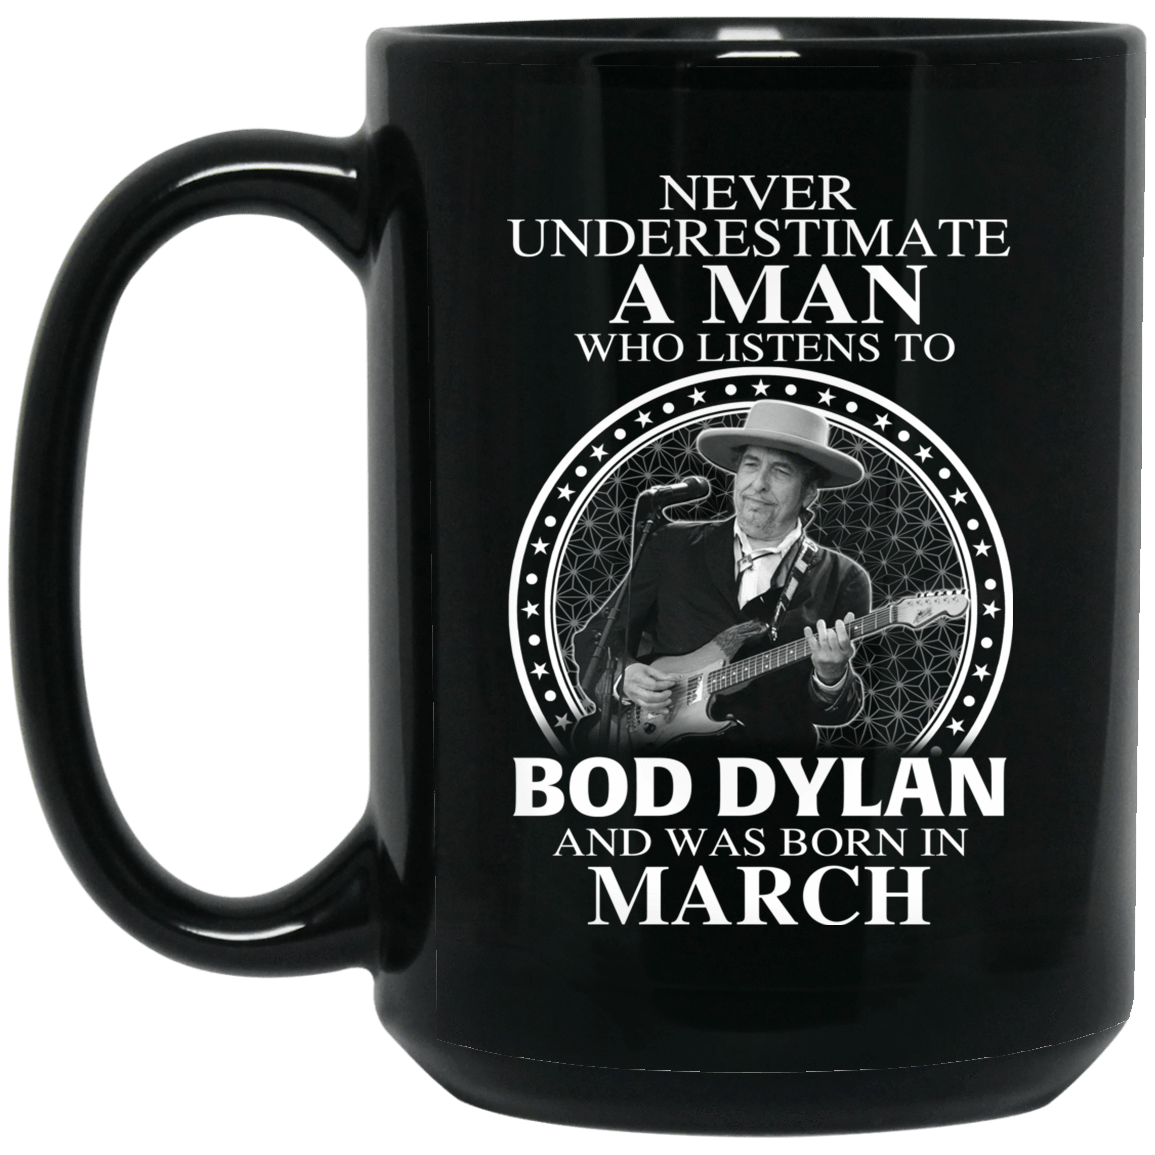 A Man Who Listens To Bob Dylan And Was Born In March Mug 1066-10182-76153602-49311 - Tee Ript